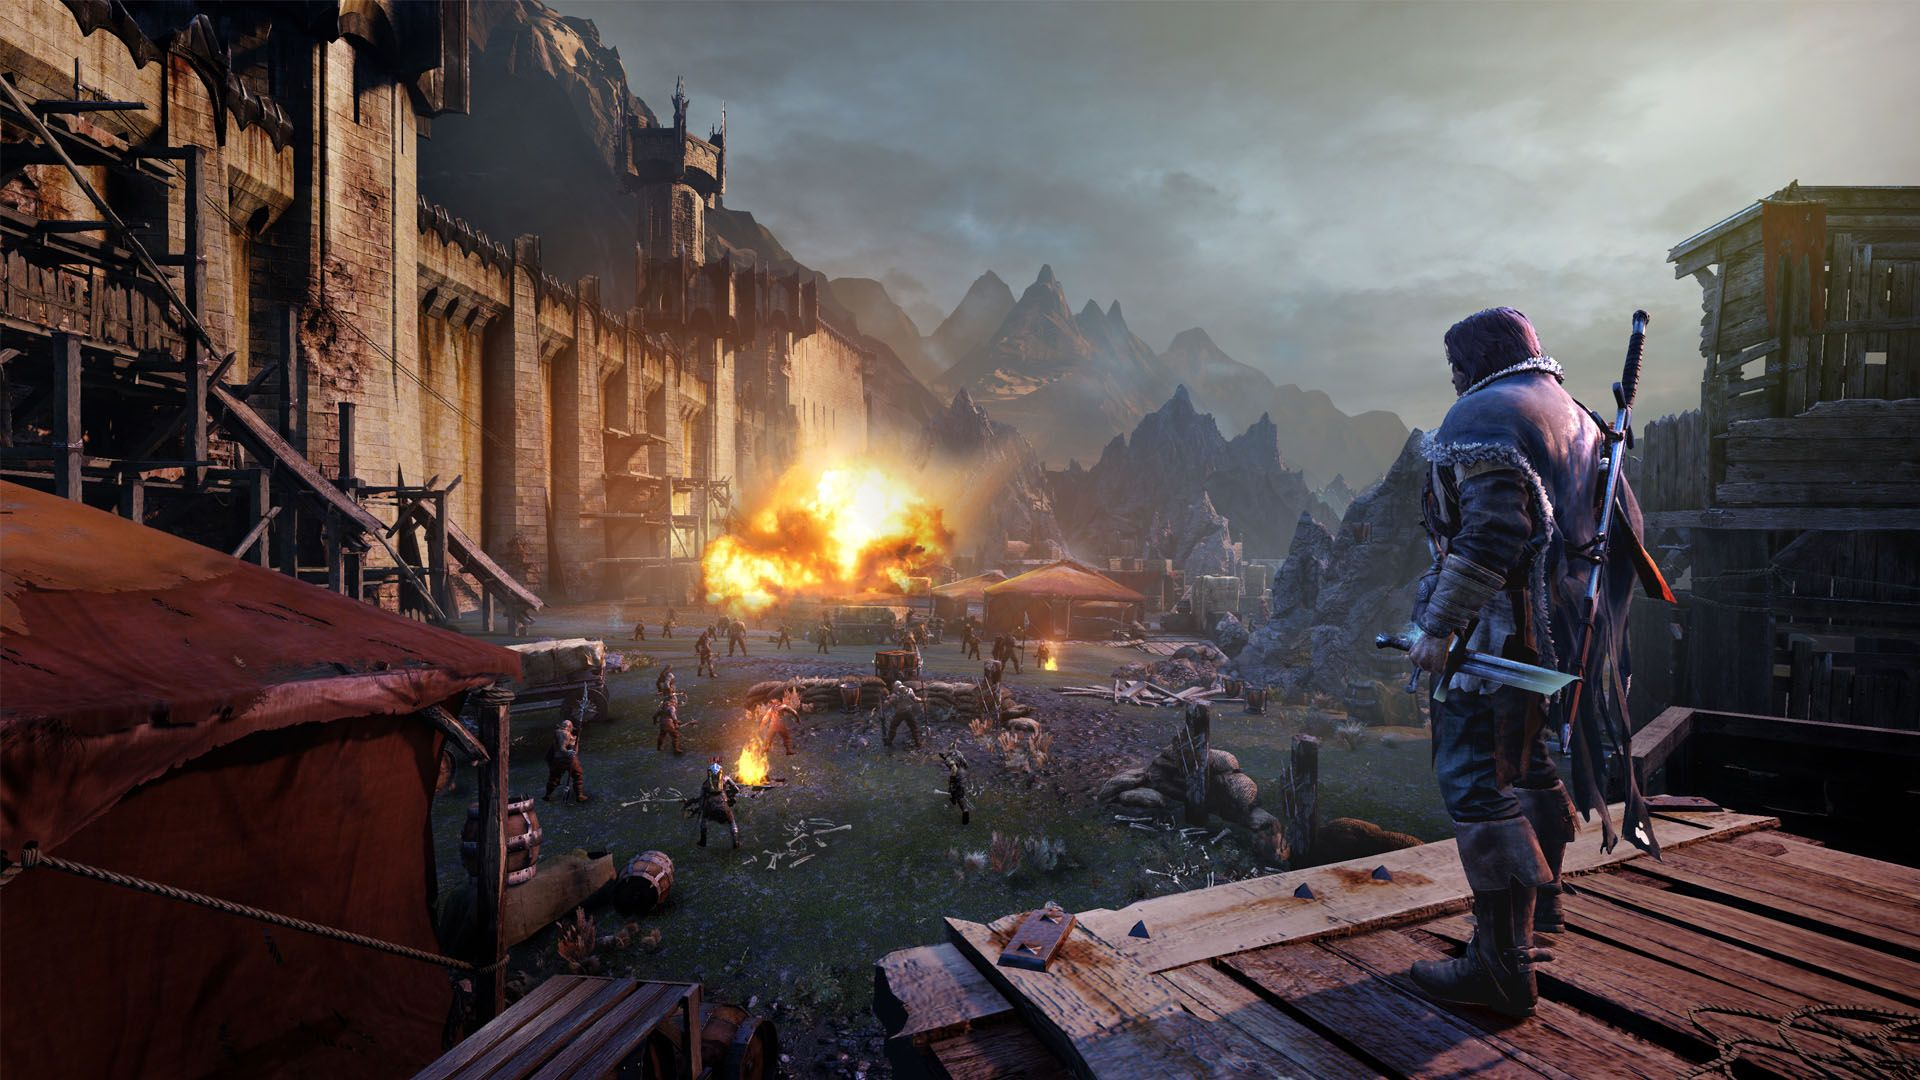 Ubisoft планировала судиться с WB Interactive Entertainment за копирование Assassins Creed в Middle-earth: Shadow of Mordor